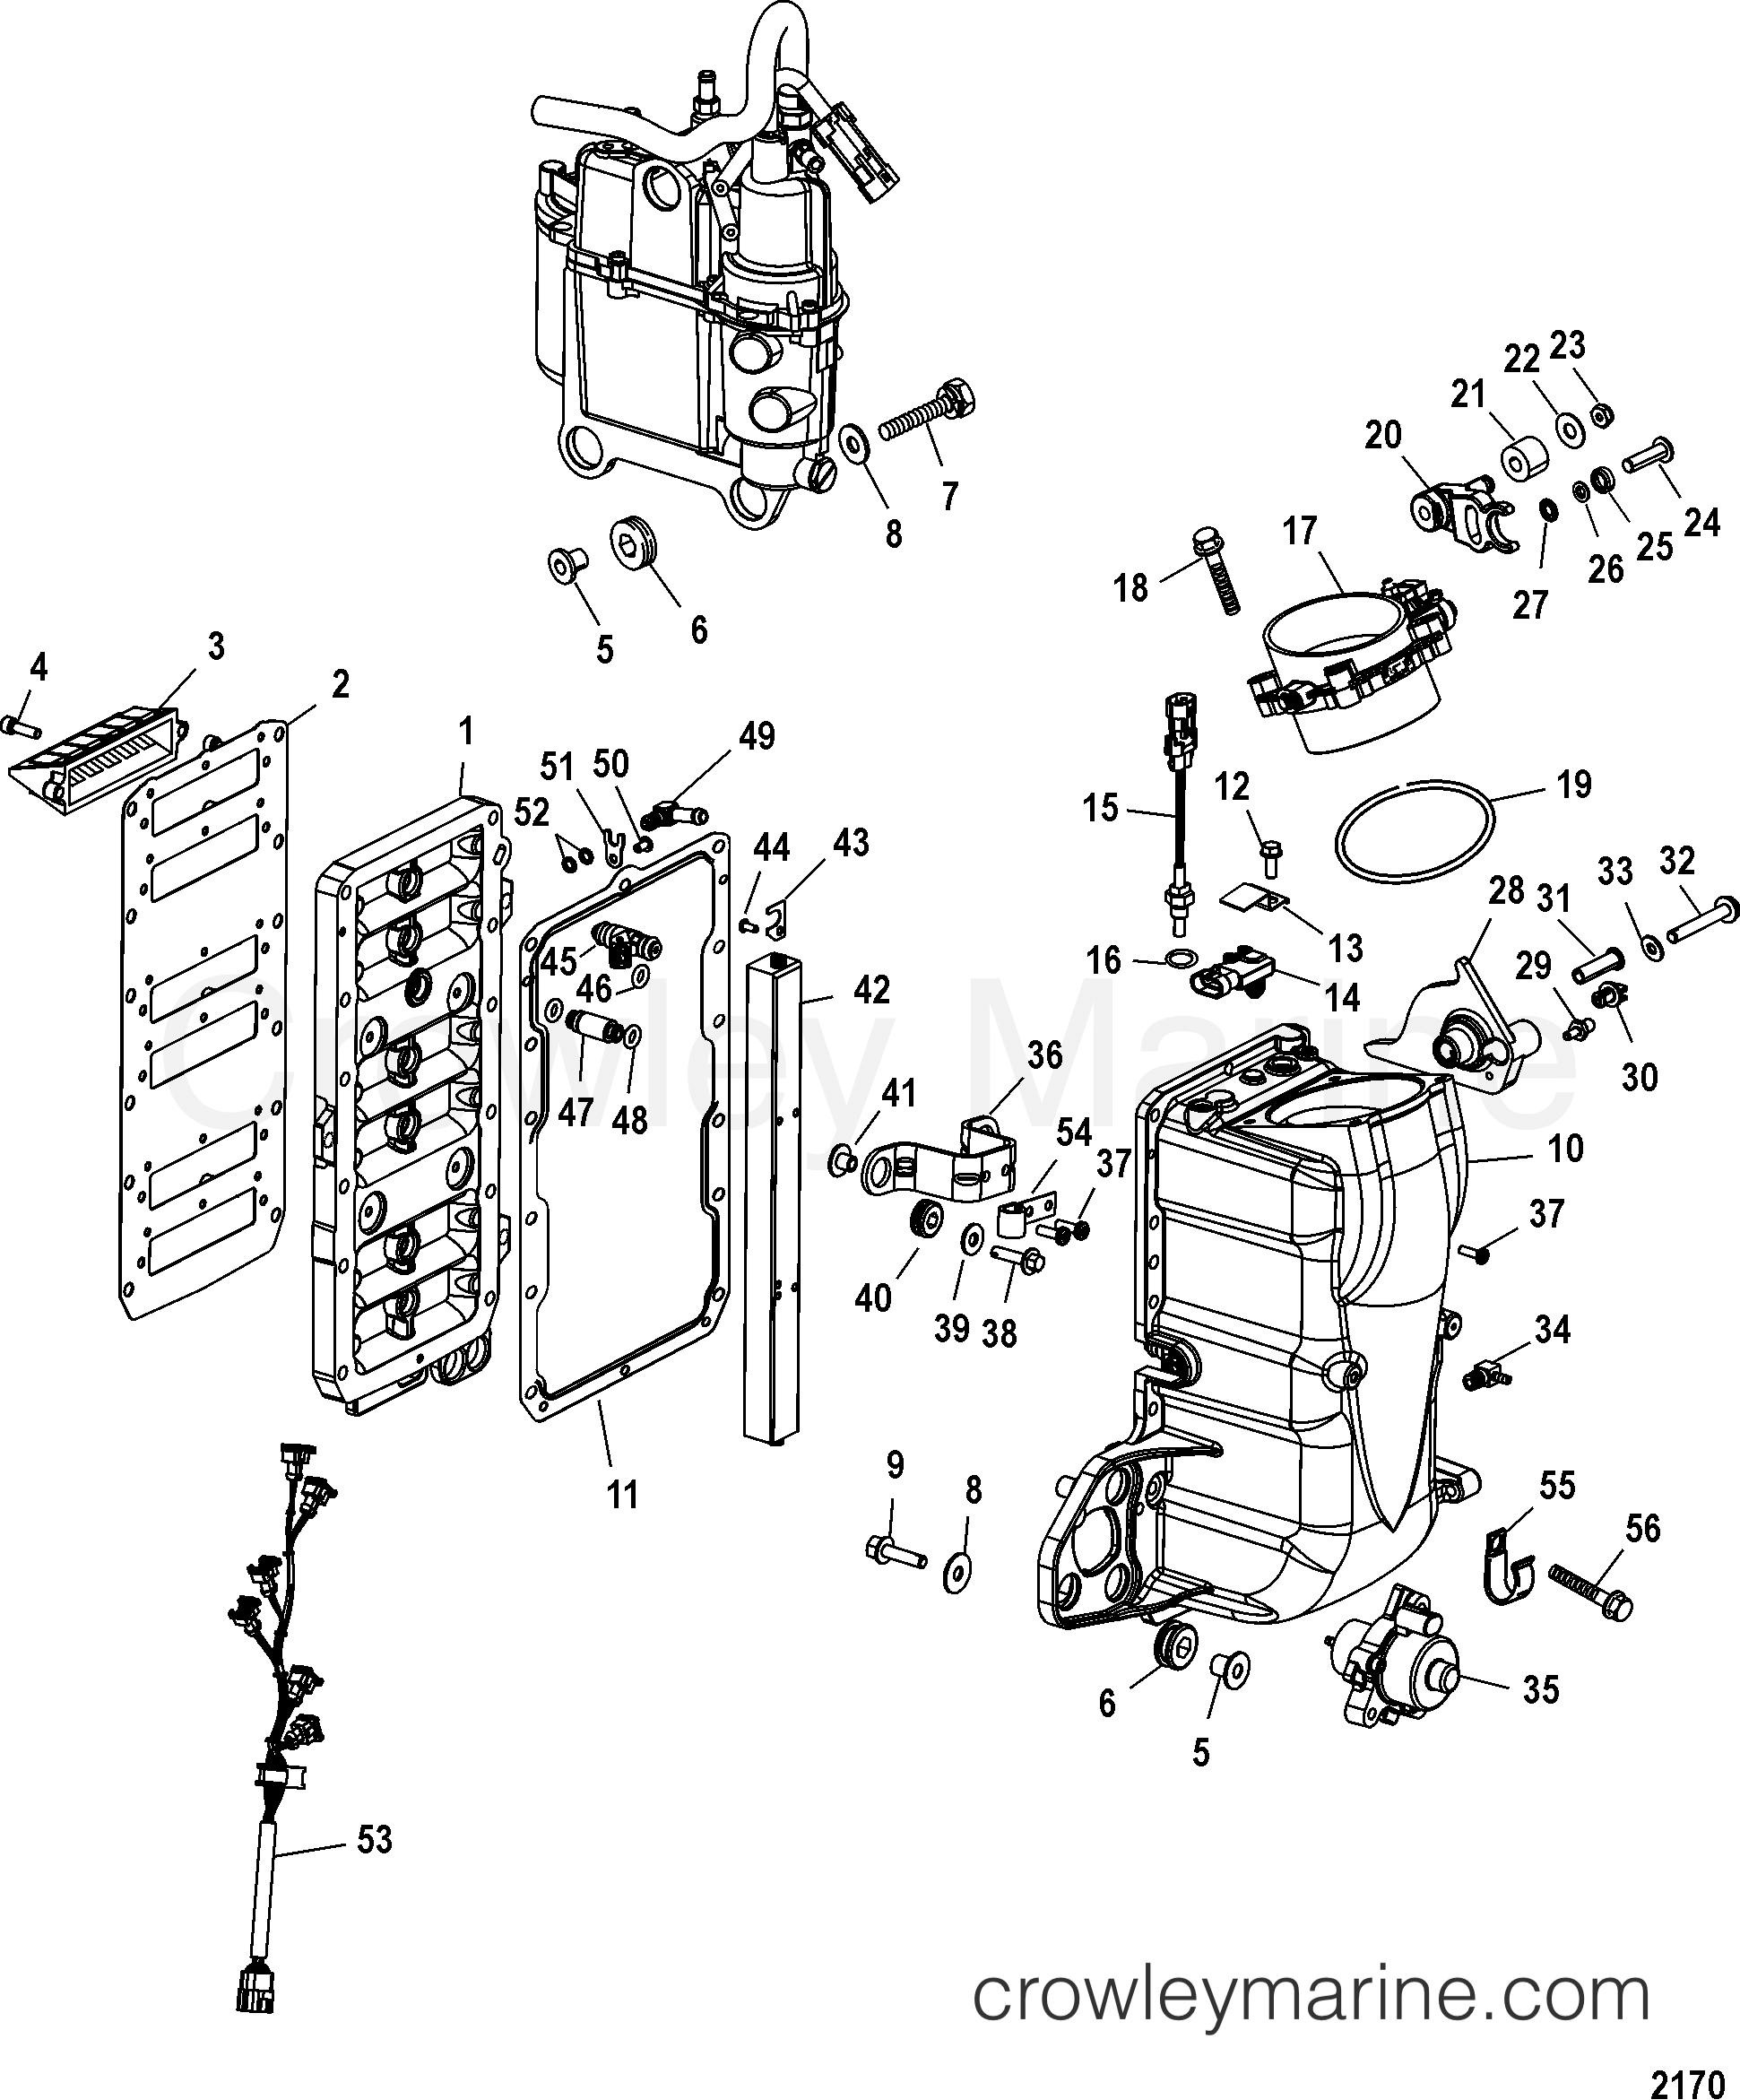 9 Mercury Outboard Parts Diagram